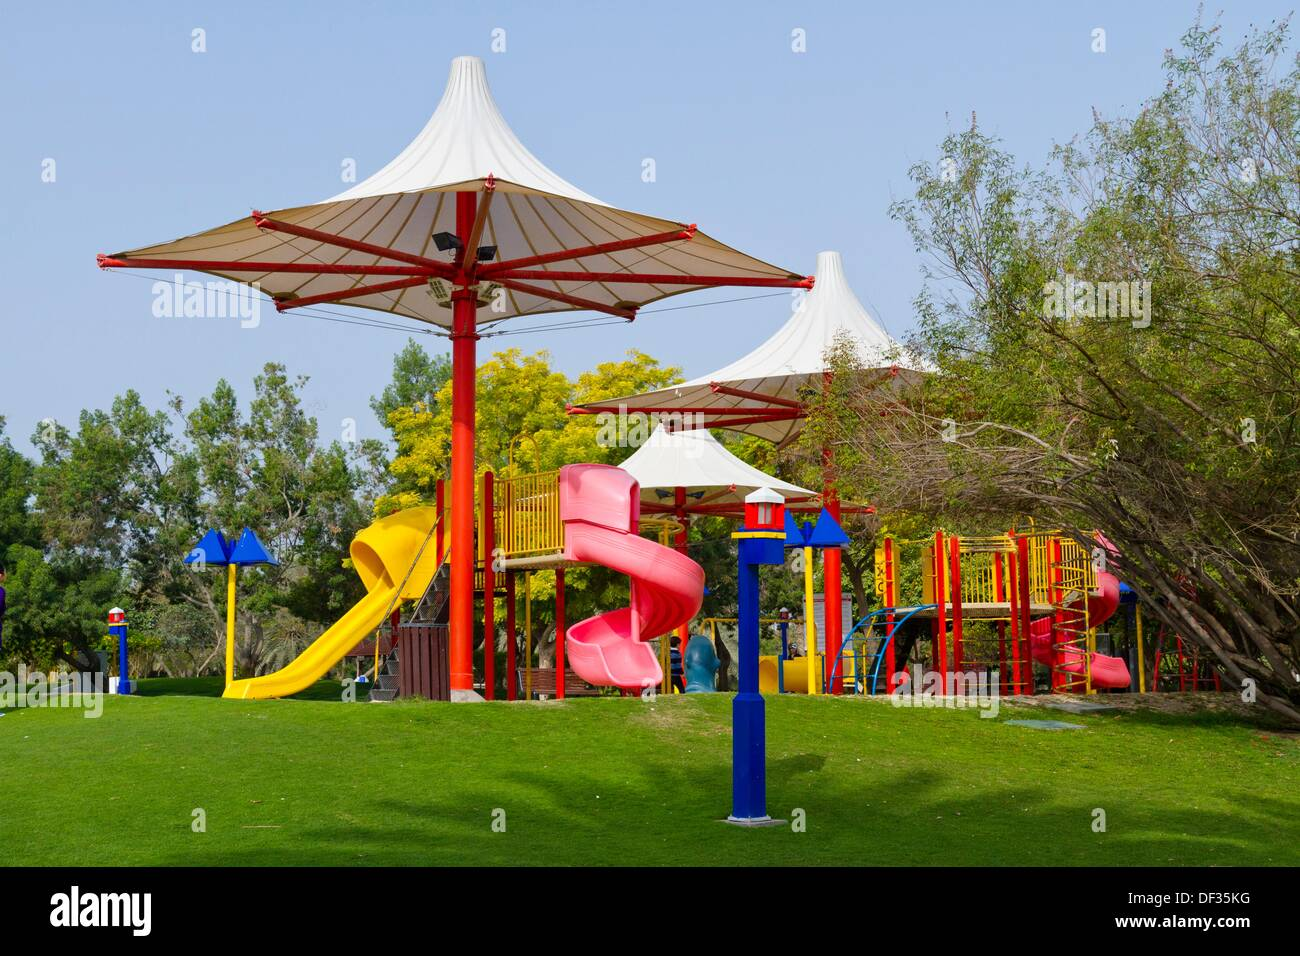 Ihram Kids For Sale Dubai: Children´s Playground In Creek Park, Dubai, UAE Stock